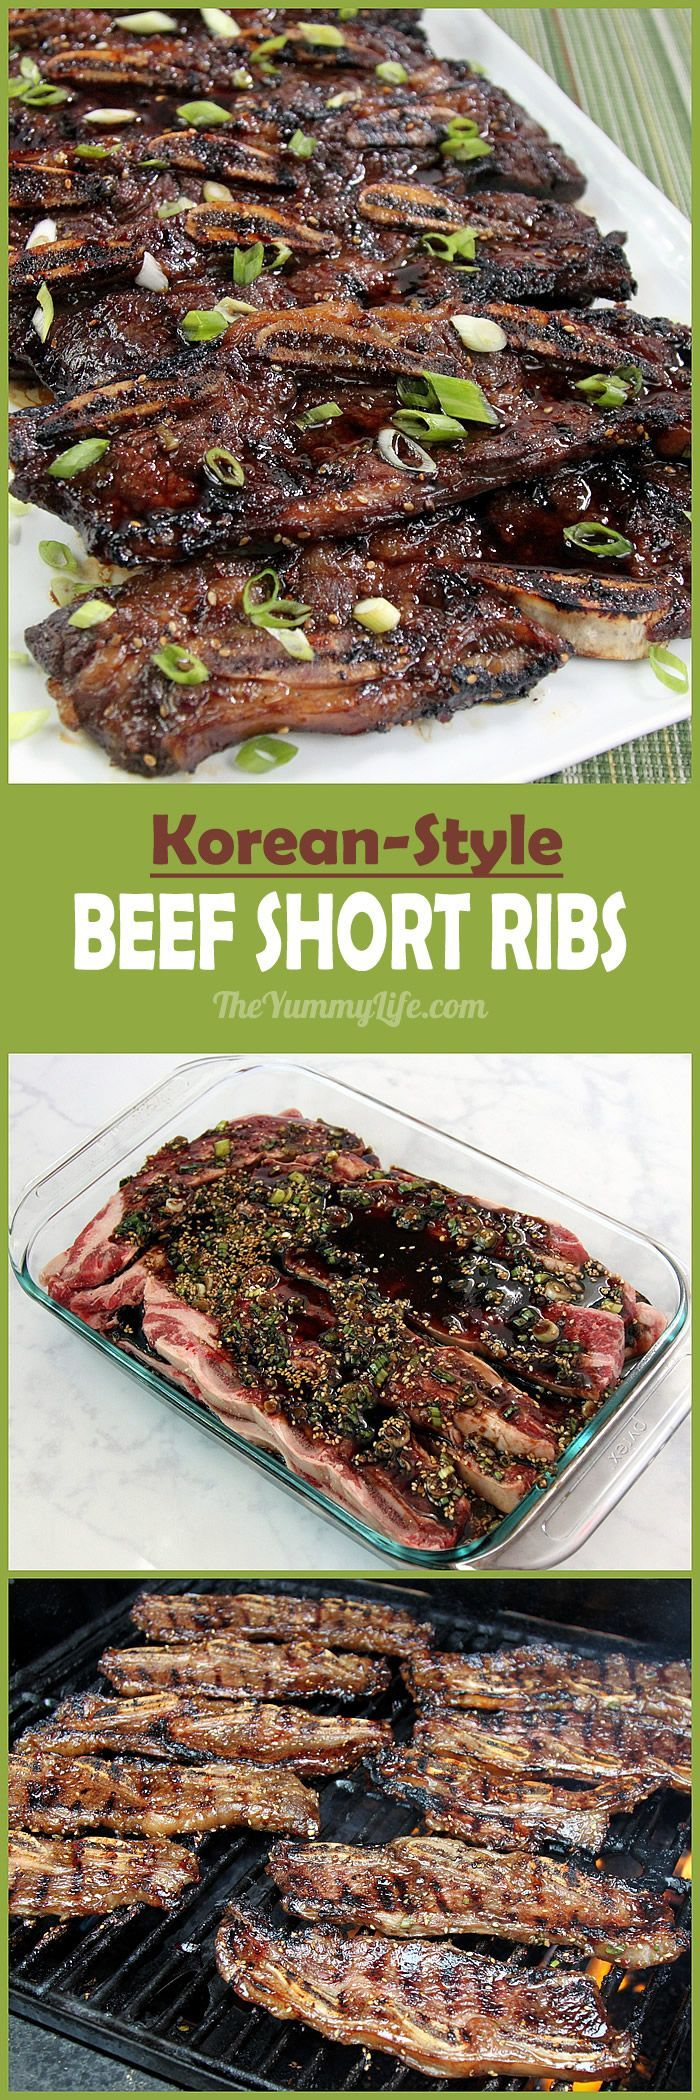 These amazingly flavorful ribs are distinctive because they aren't cut in the same way as traditional short ribs. They look more like thin steaks.